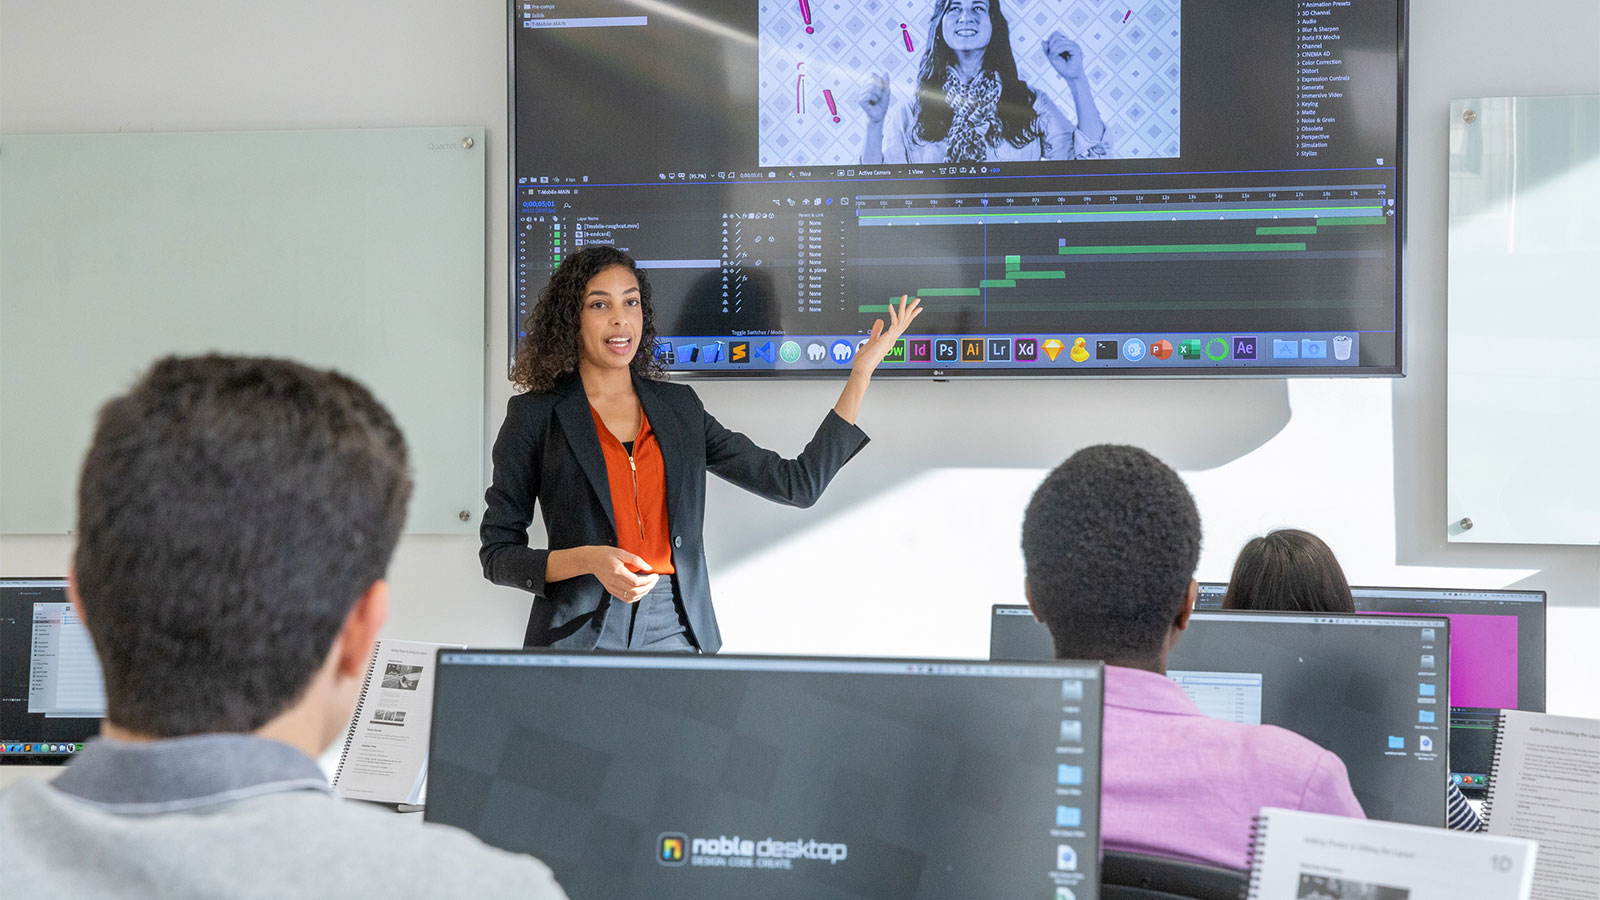 Video editing instructor leading class